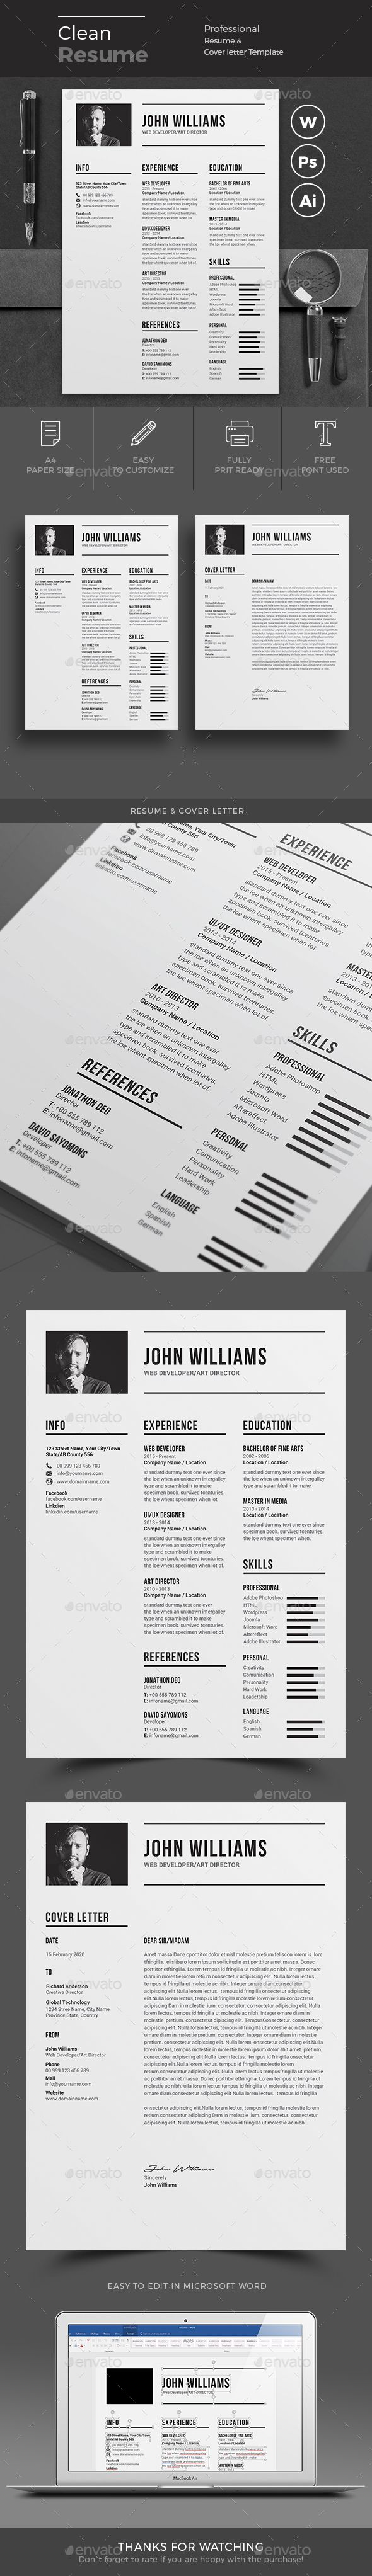 Windows Sys Administration Sample Resume Beauteous 7 Best Cv Images On Pinterest  Resume Templates Cv Template And .